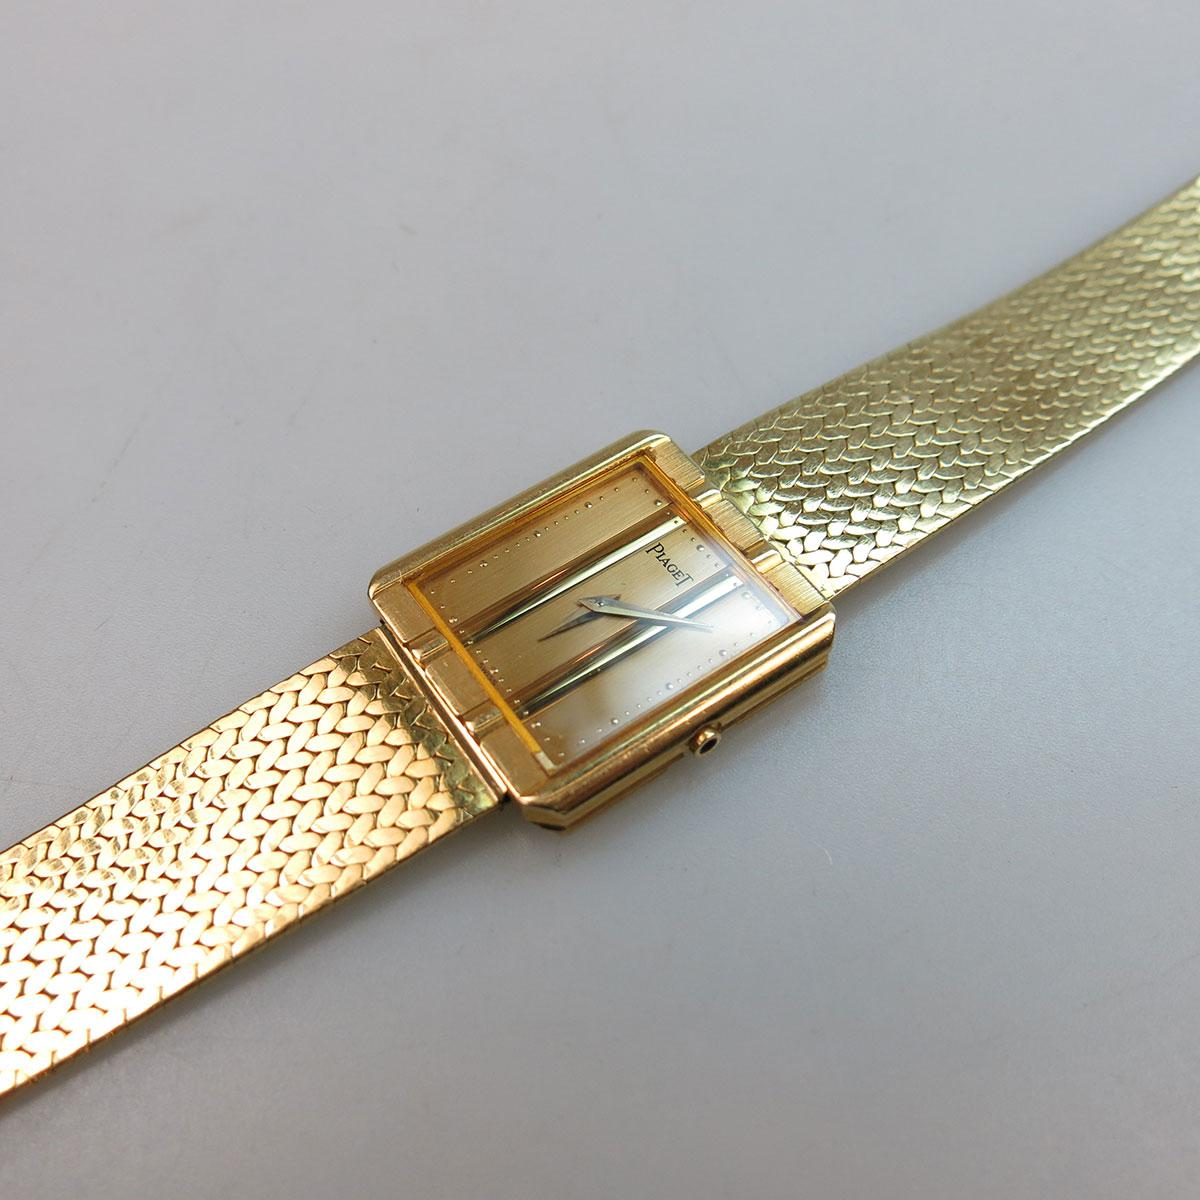 Piaget Wristwatch